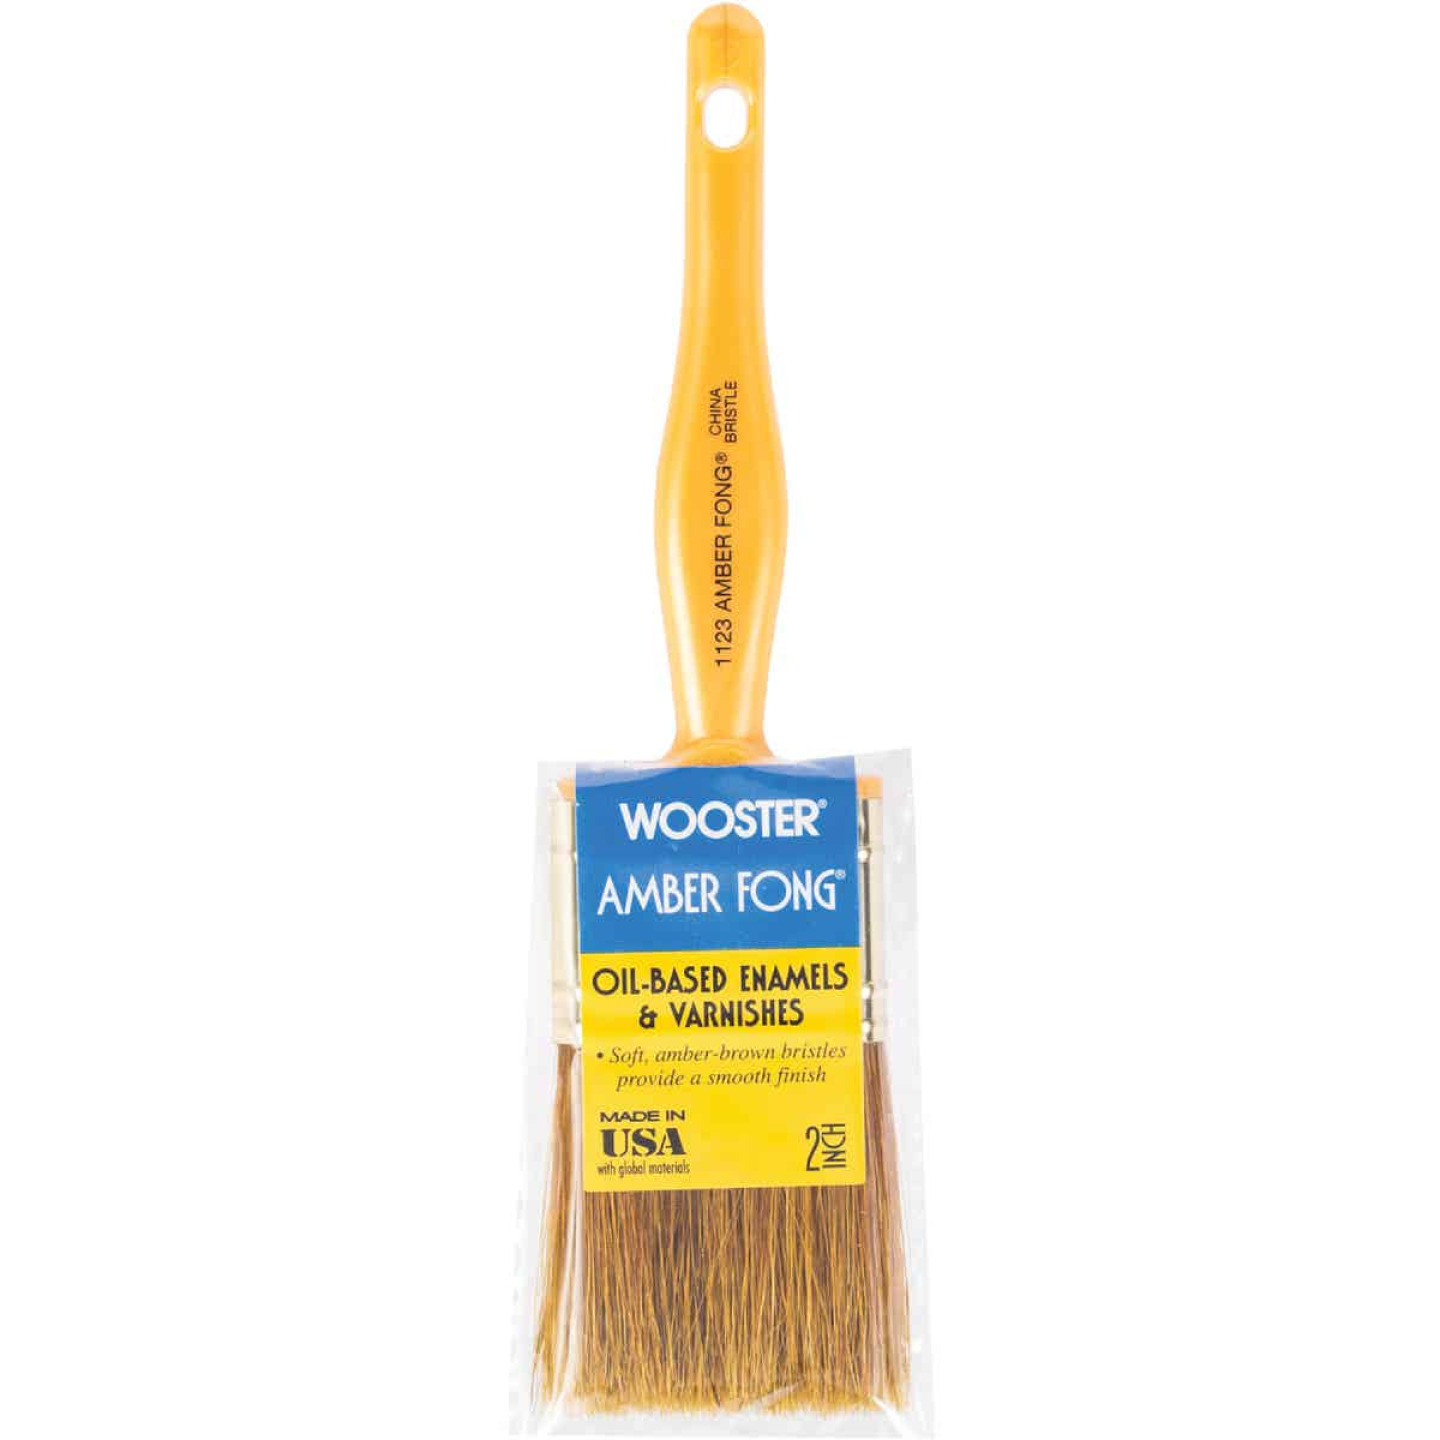 Wooster Amber Fong 2 In. Flat Paint Brush Image 1